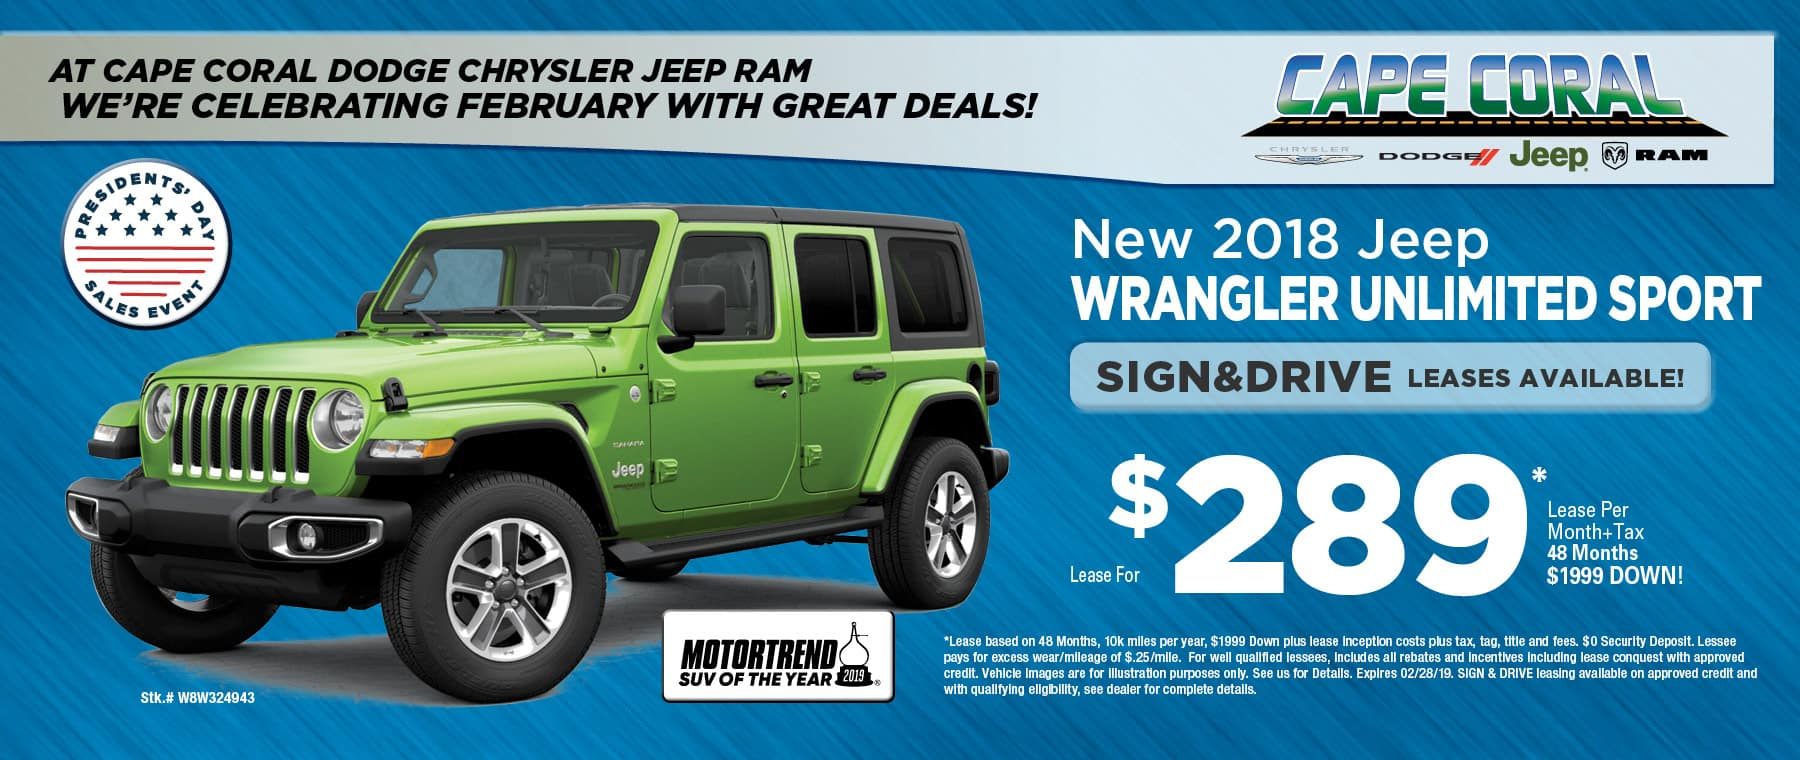 2018 Jeep Wrangler Unlimited! - At Cape Coral Jeep!